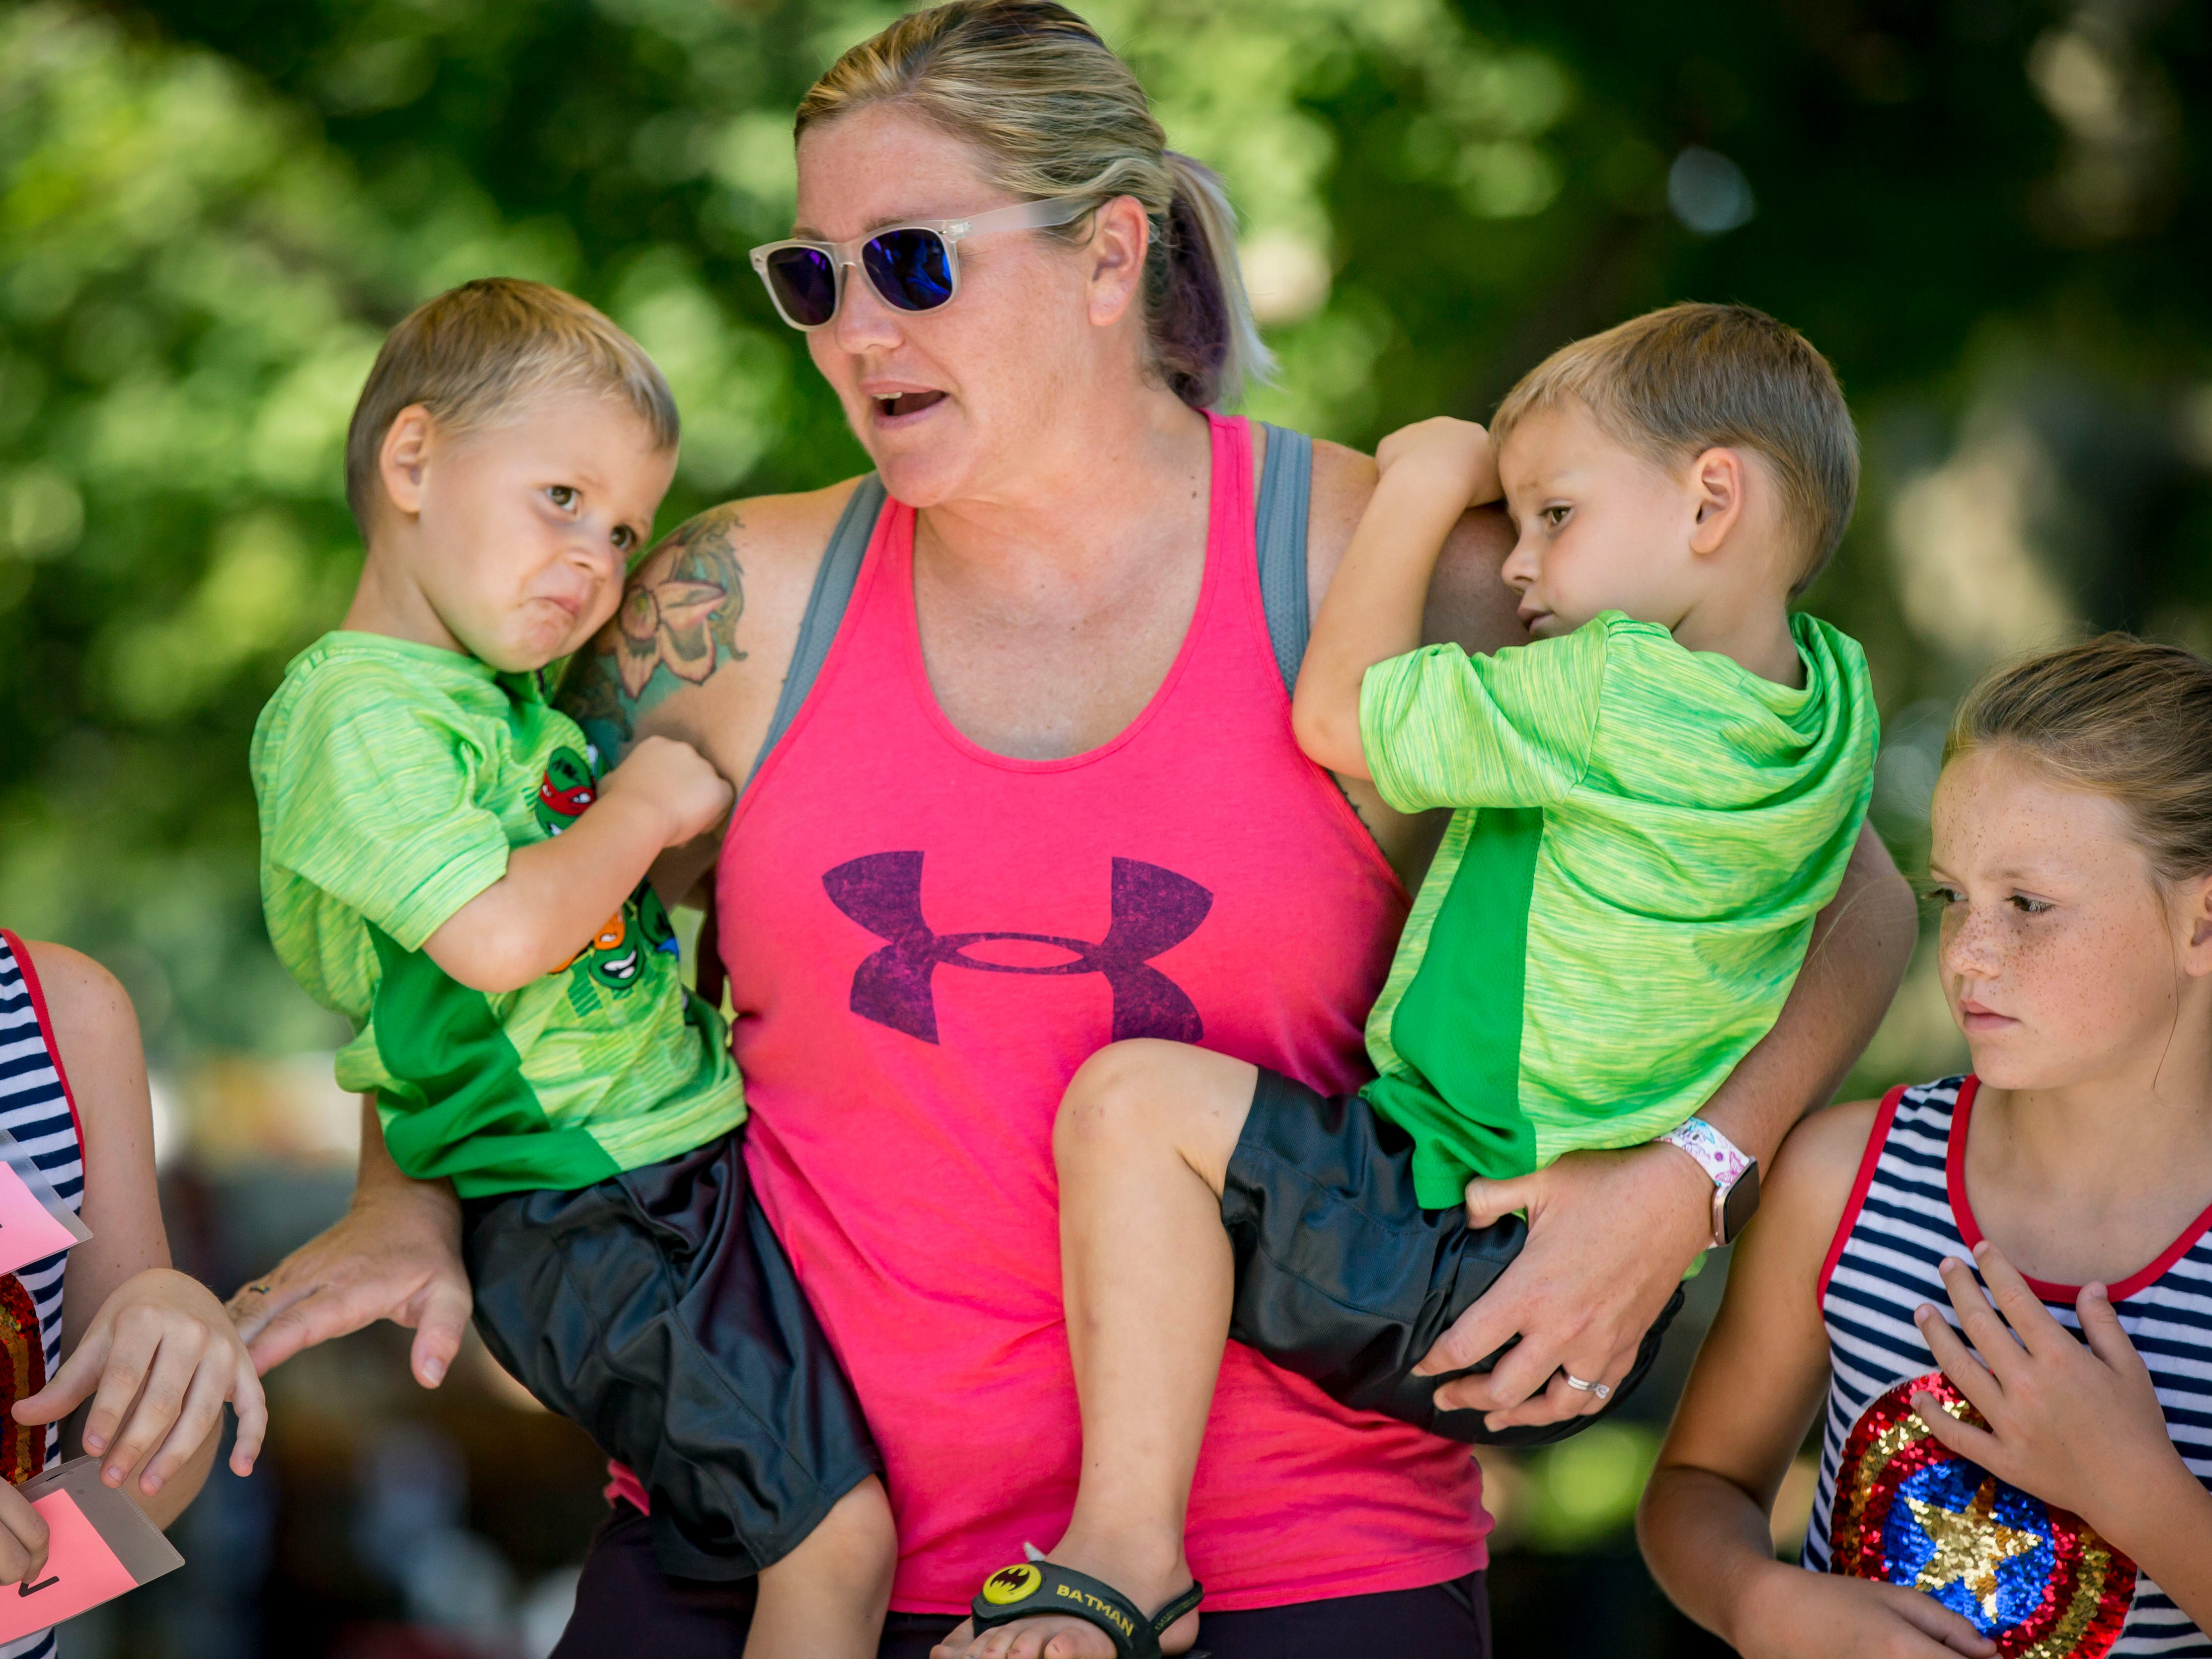 Archer, left, and Cash Janssen of New Virginia are held by their mother Amy during the Twins, Triplets and More Contest on the Anne and Bill Riley Stage at the 2018 Iowa State Fair in Des Moines Thursday, Aug. 9, 2018.